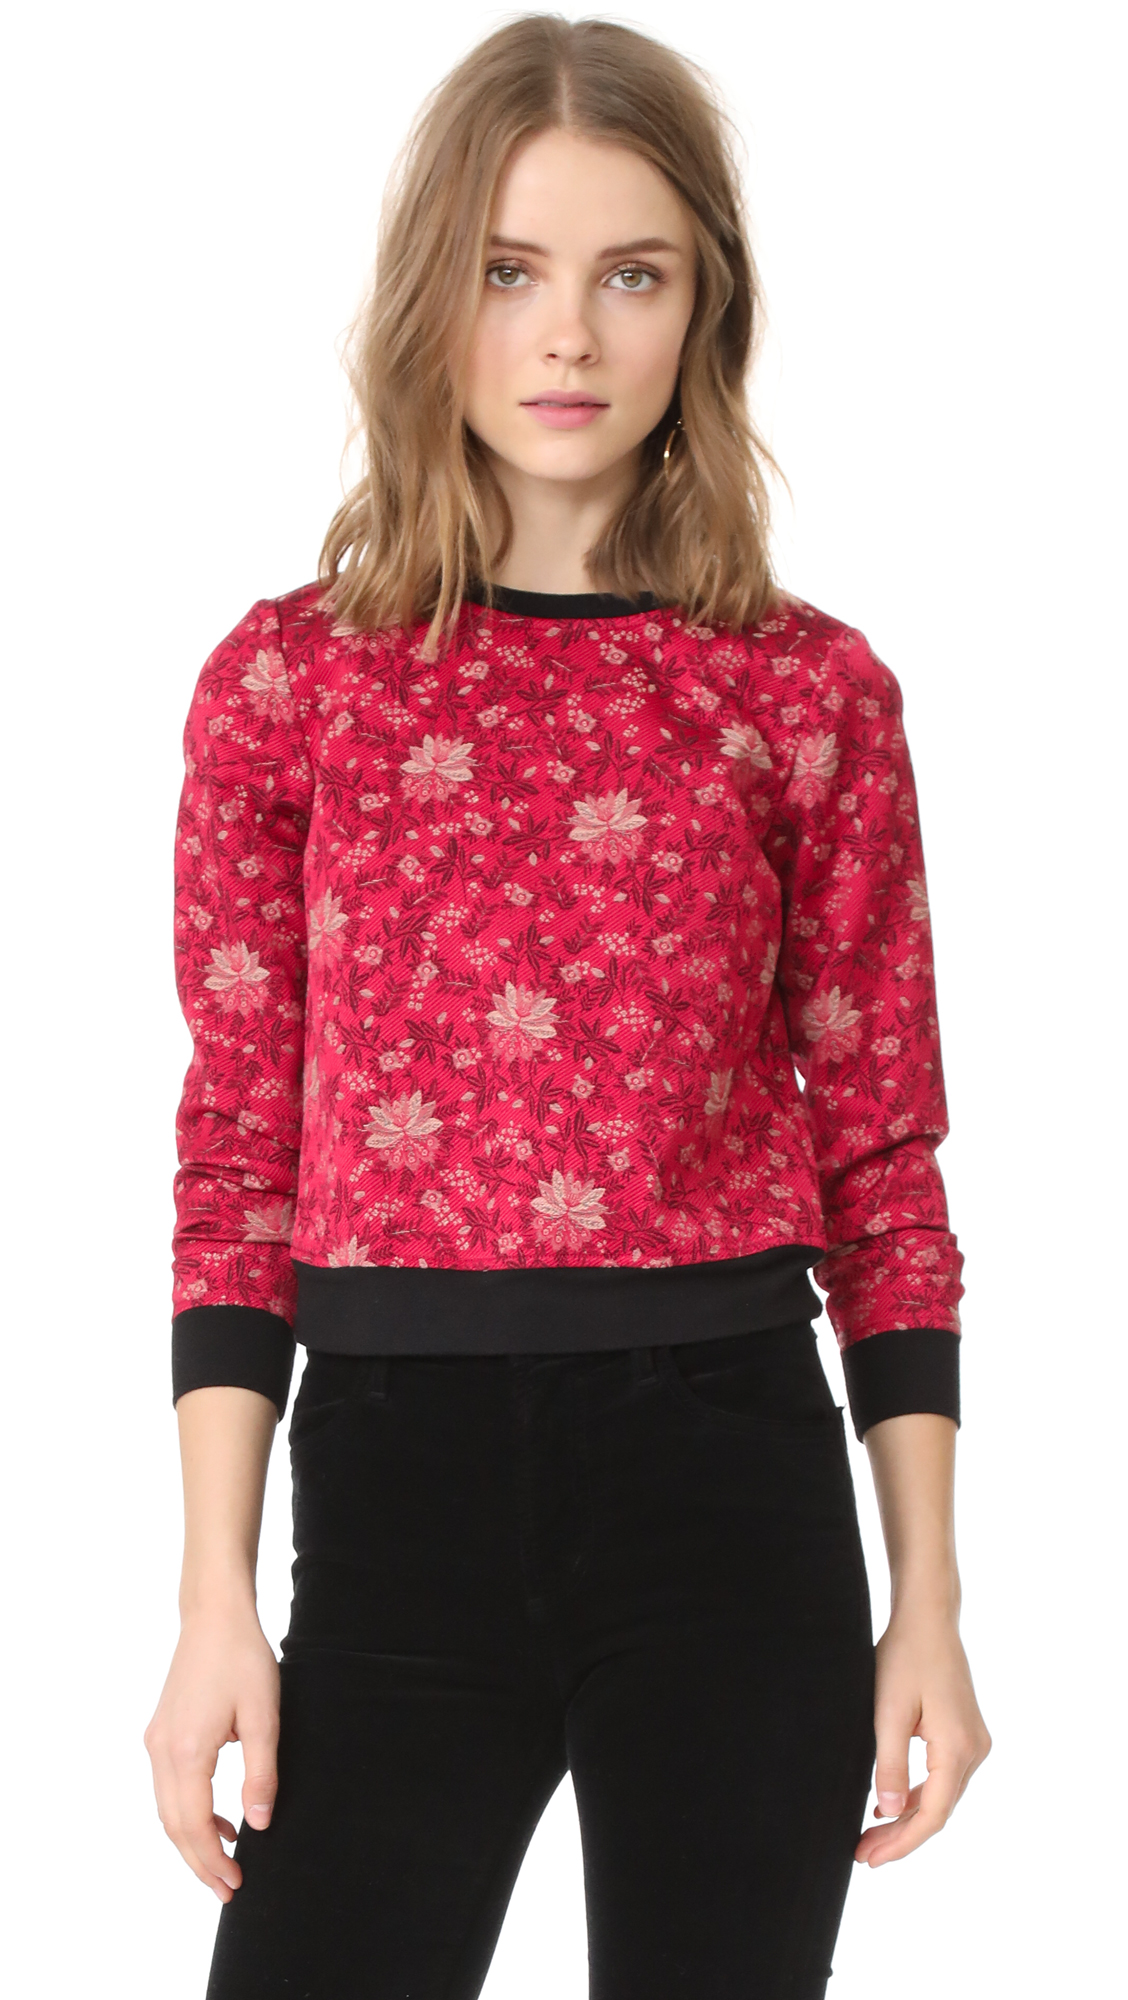 alice + olivia Marylou Back Zip Sweatshirt - Fuchsia